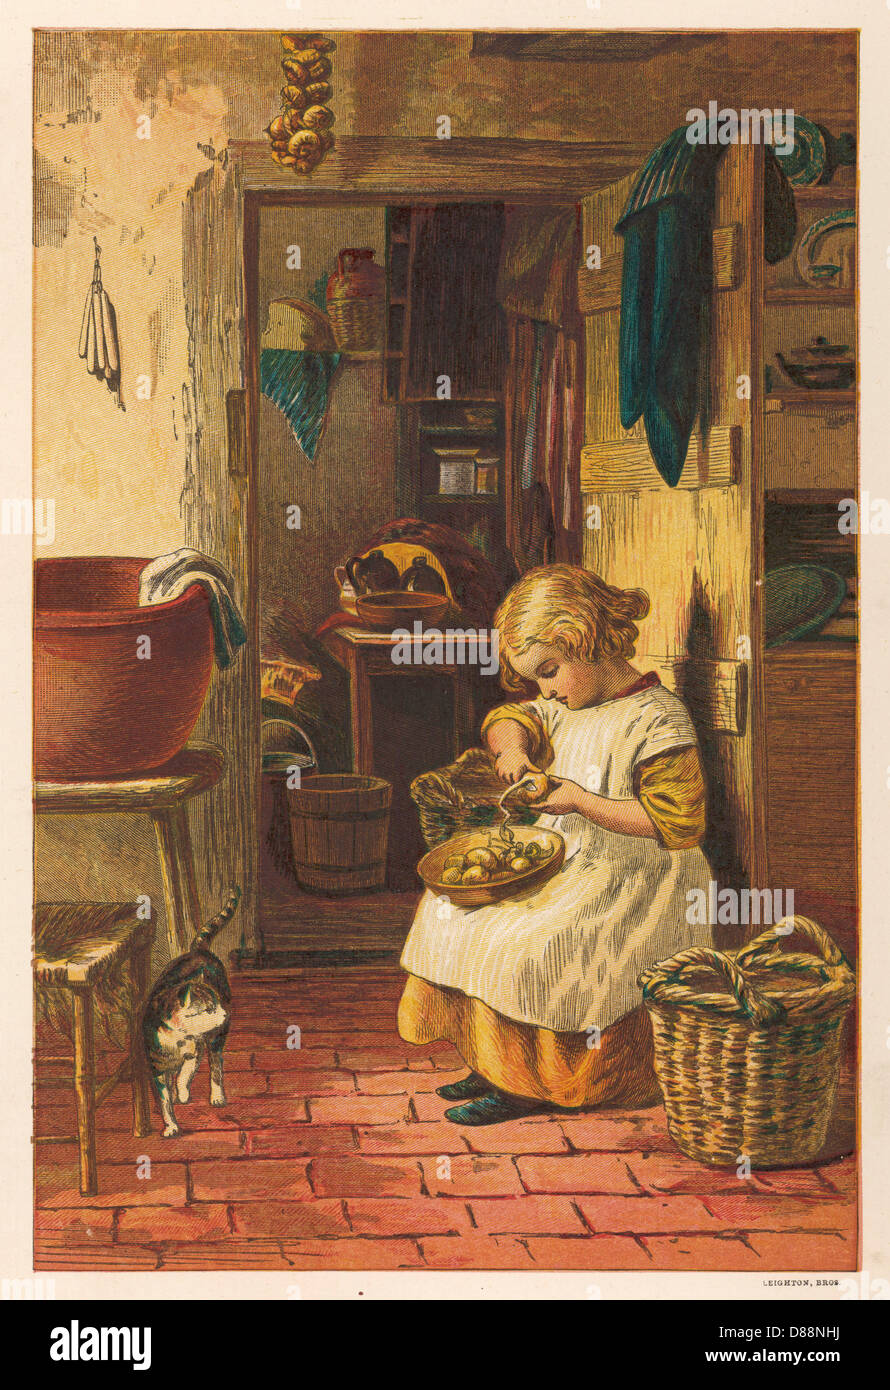 Small Girl Cooks 1878 - Stock Image